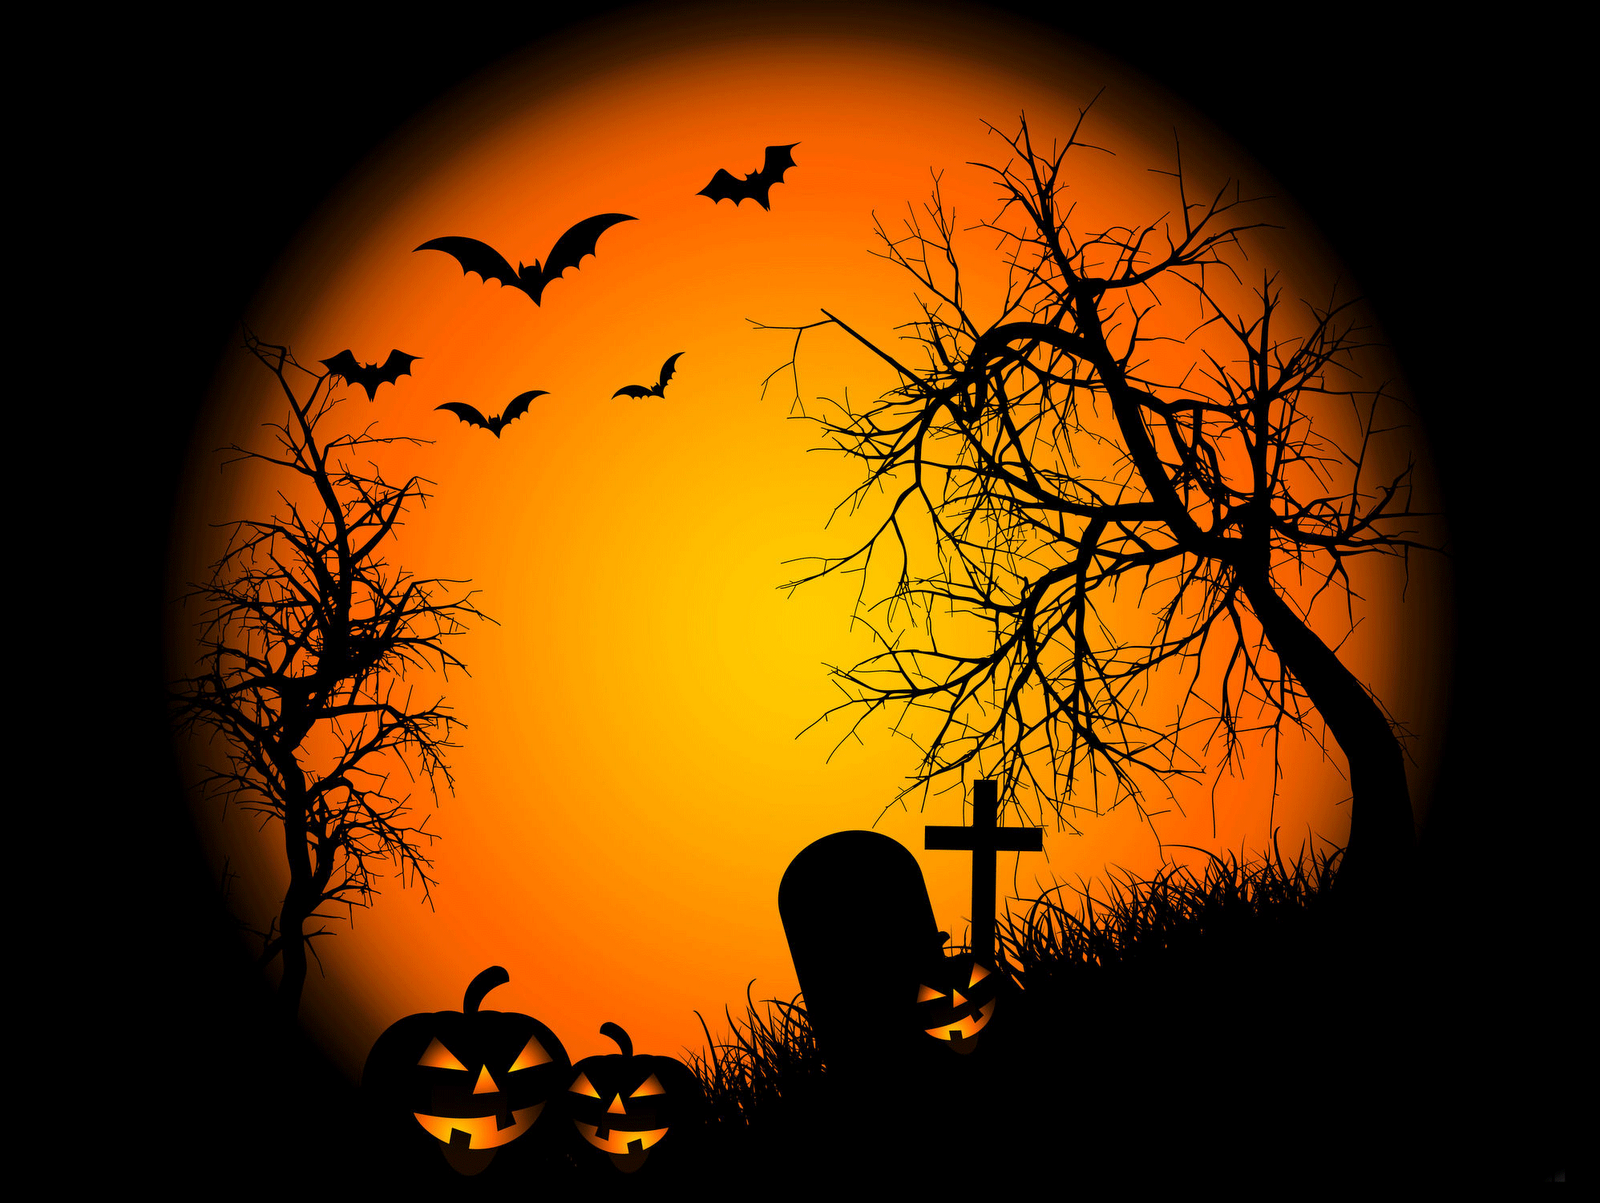 Desktop Halloween Wallpaper.